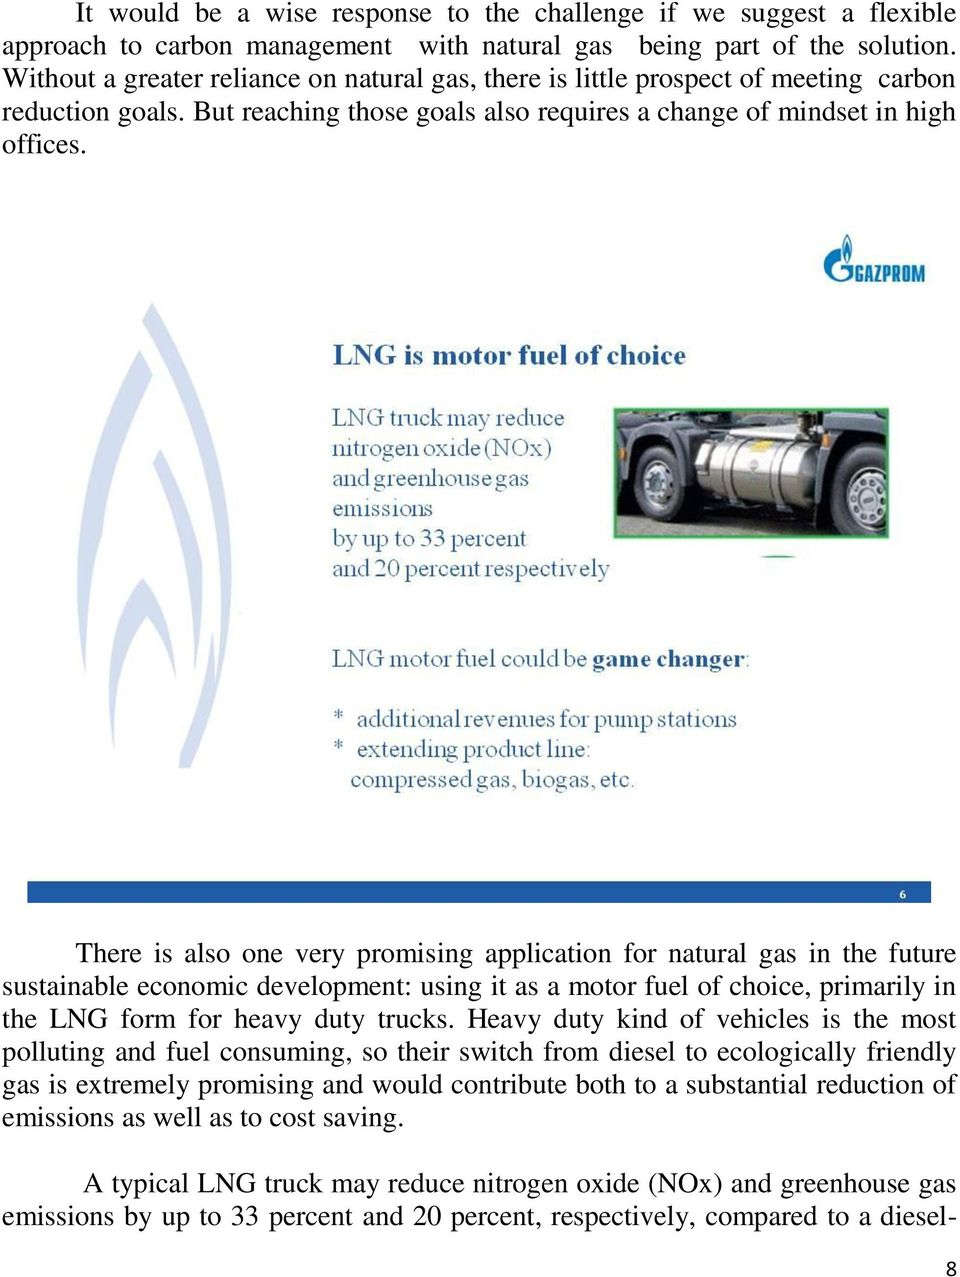 There is also one very promising application for natural gas in the future sustainable economic development: using it as a motor fuel of choice, primarily in the LNG form for heavy duty trucks.